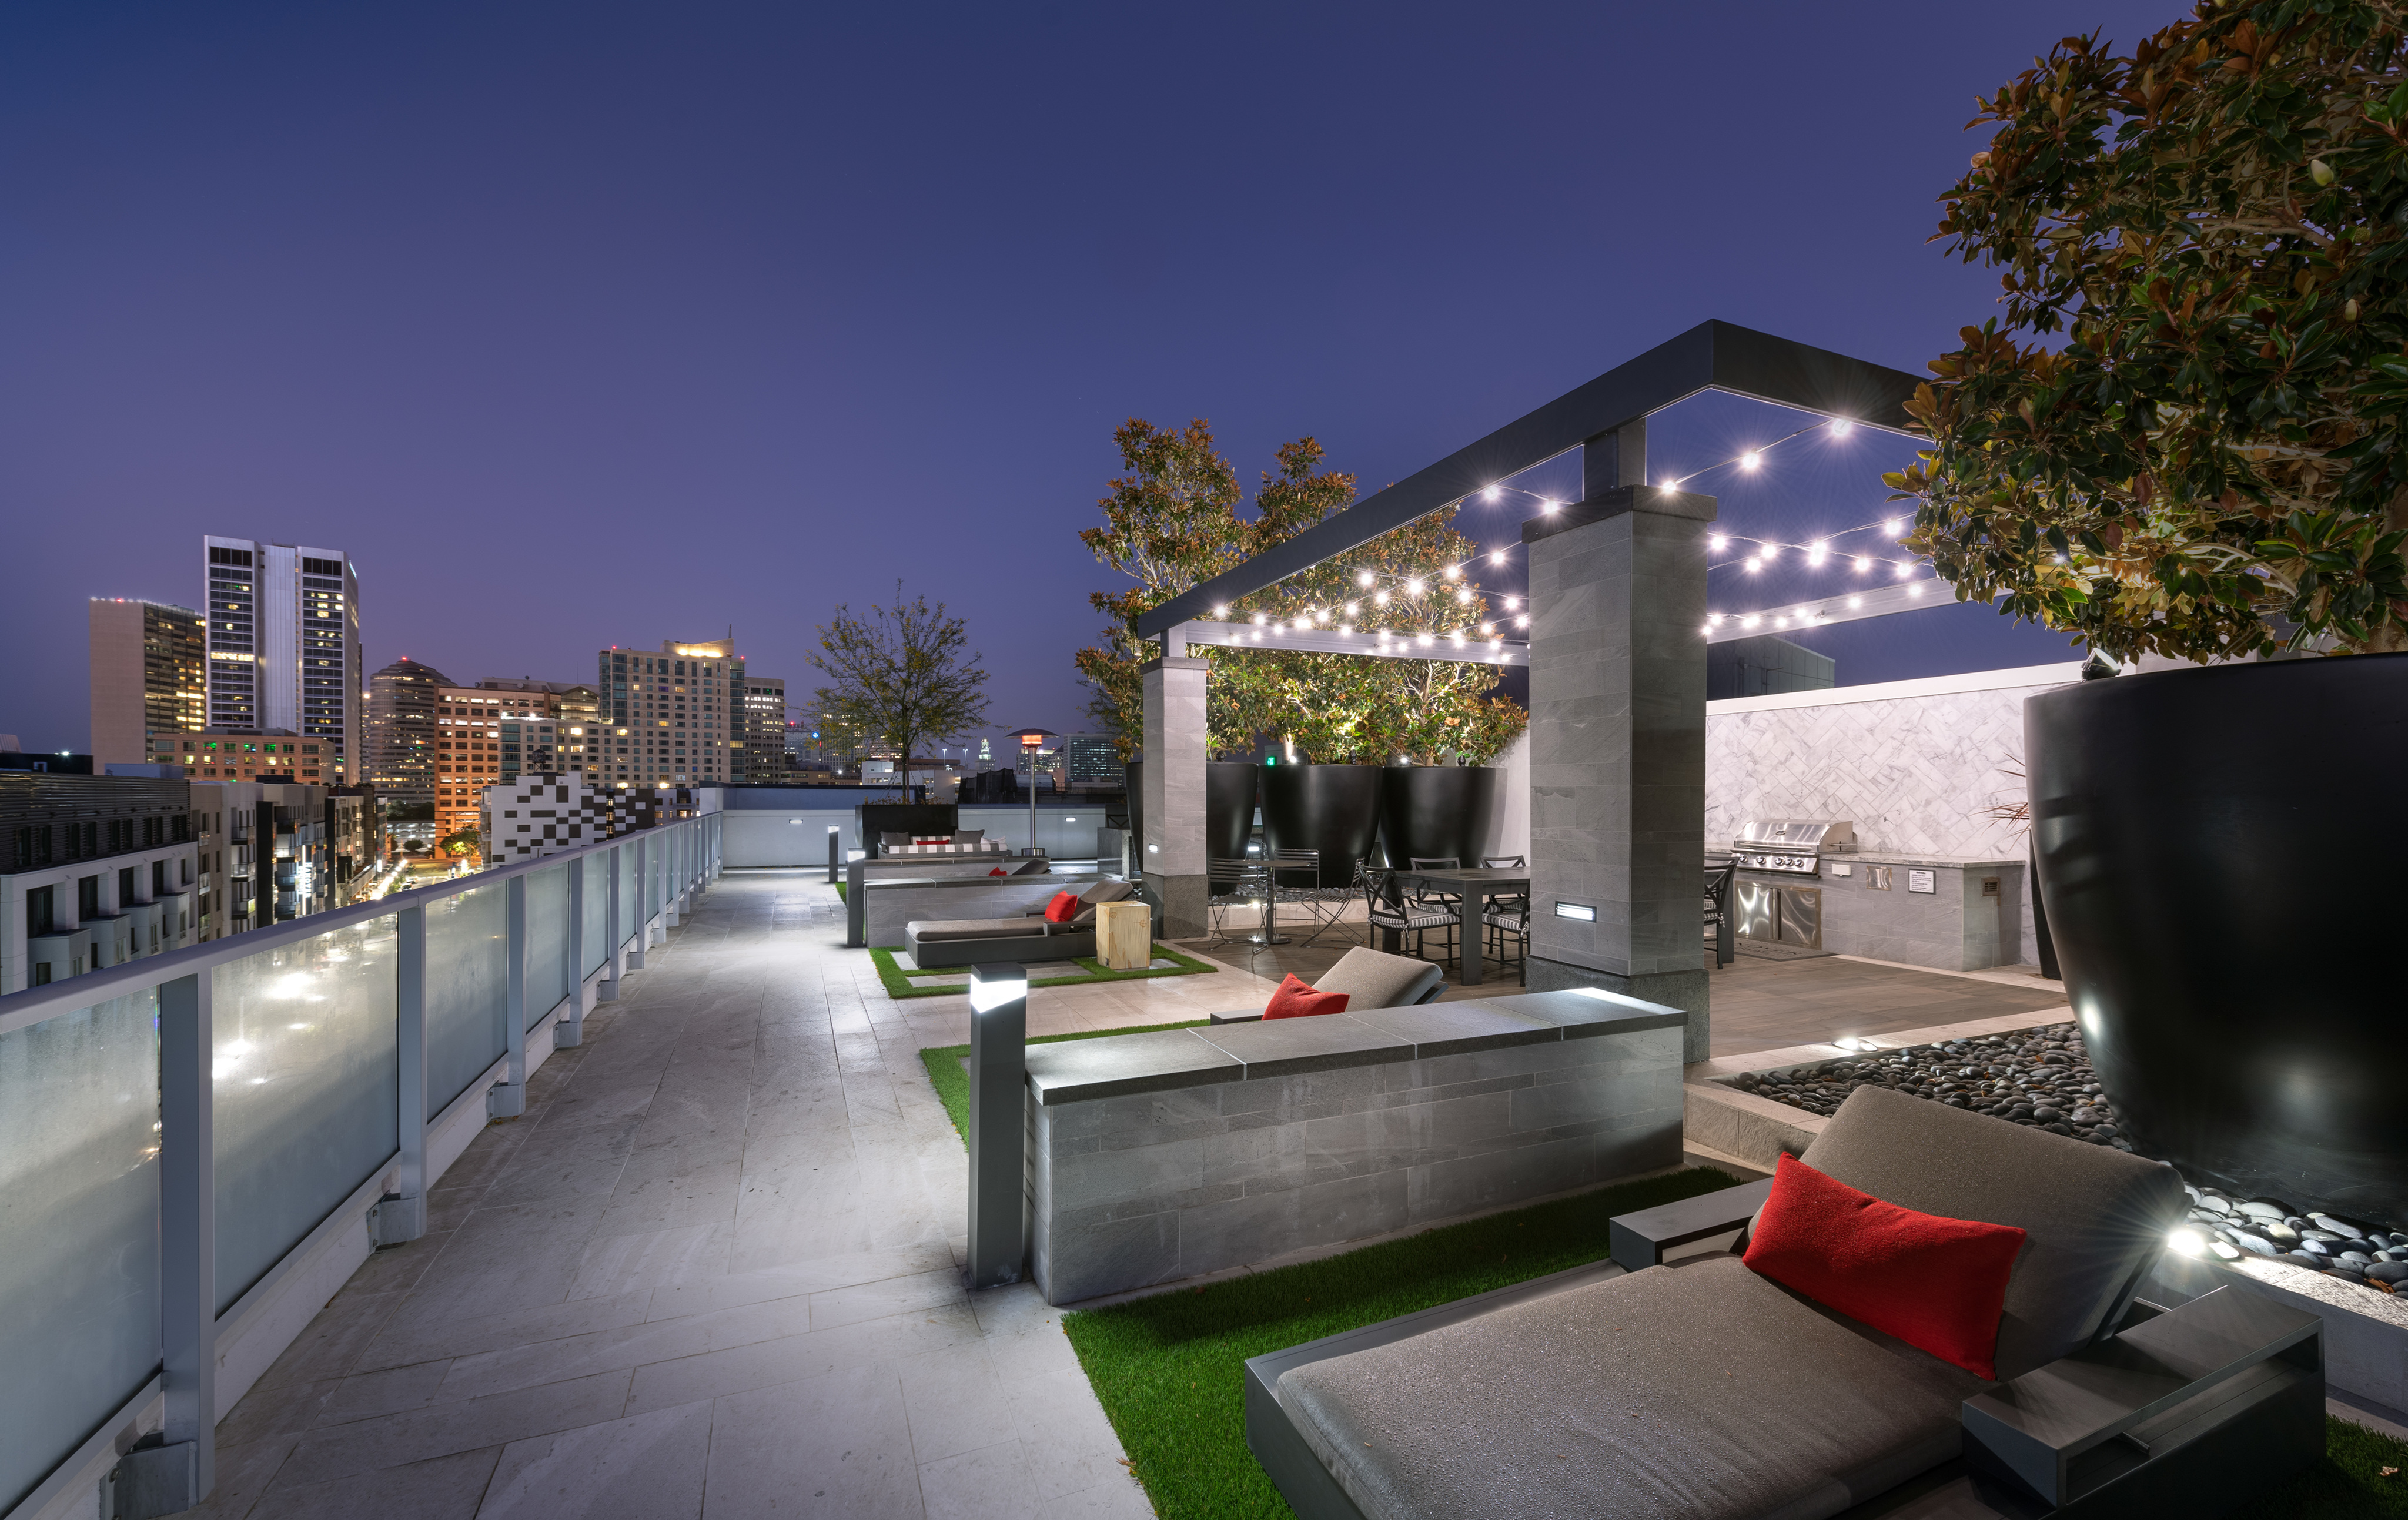 Rooftop Terrace Lounge with Expansive Lawn, Firepit and Outdoor Grilling Areas at Hanover Broadway